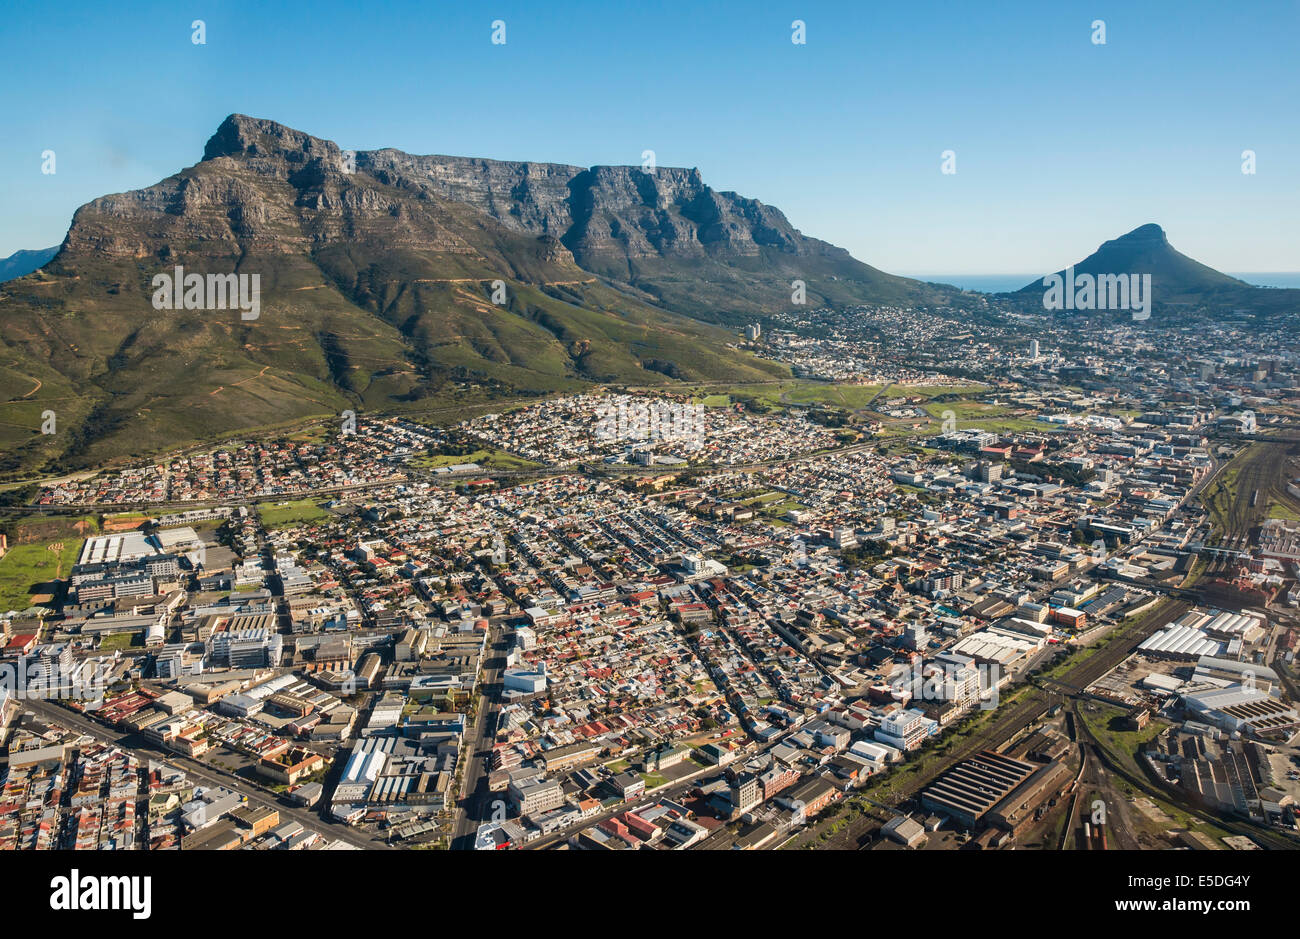 Aerial view, Devil's Peak, Table Mountain and Lion's Head, Cape Town, Western Cape, South Africa - Stock Image